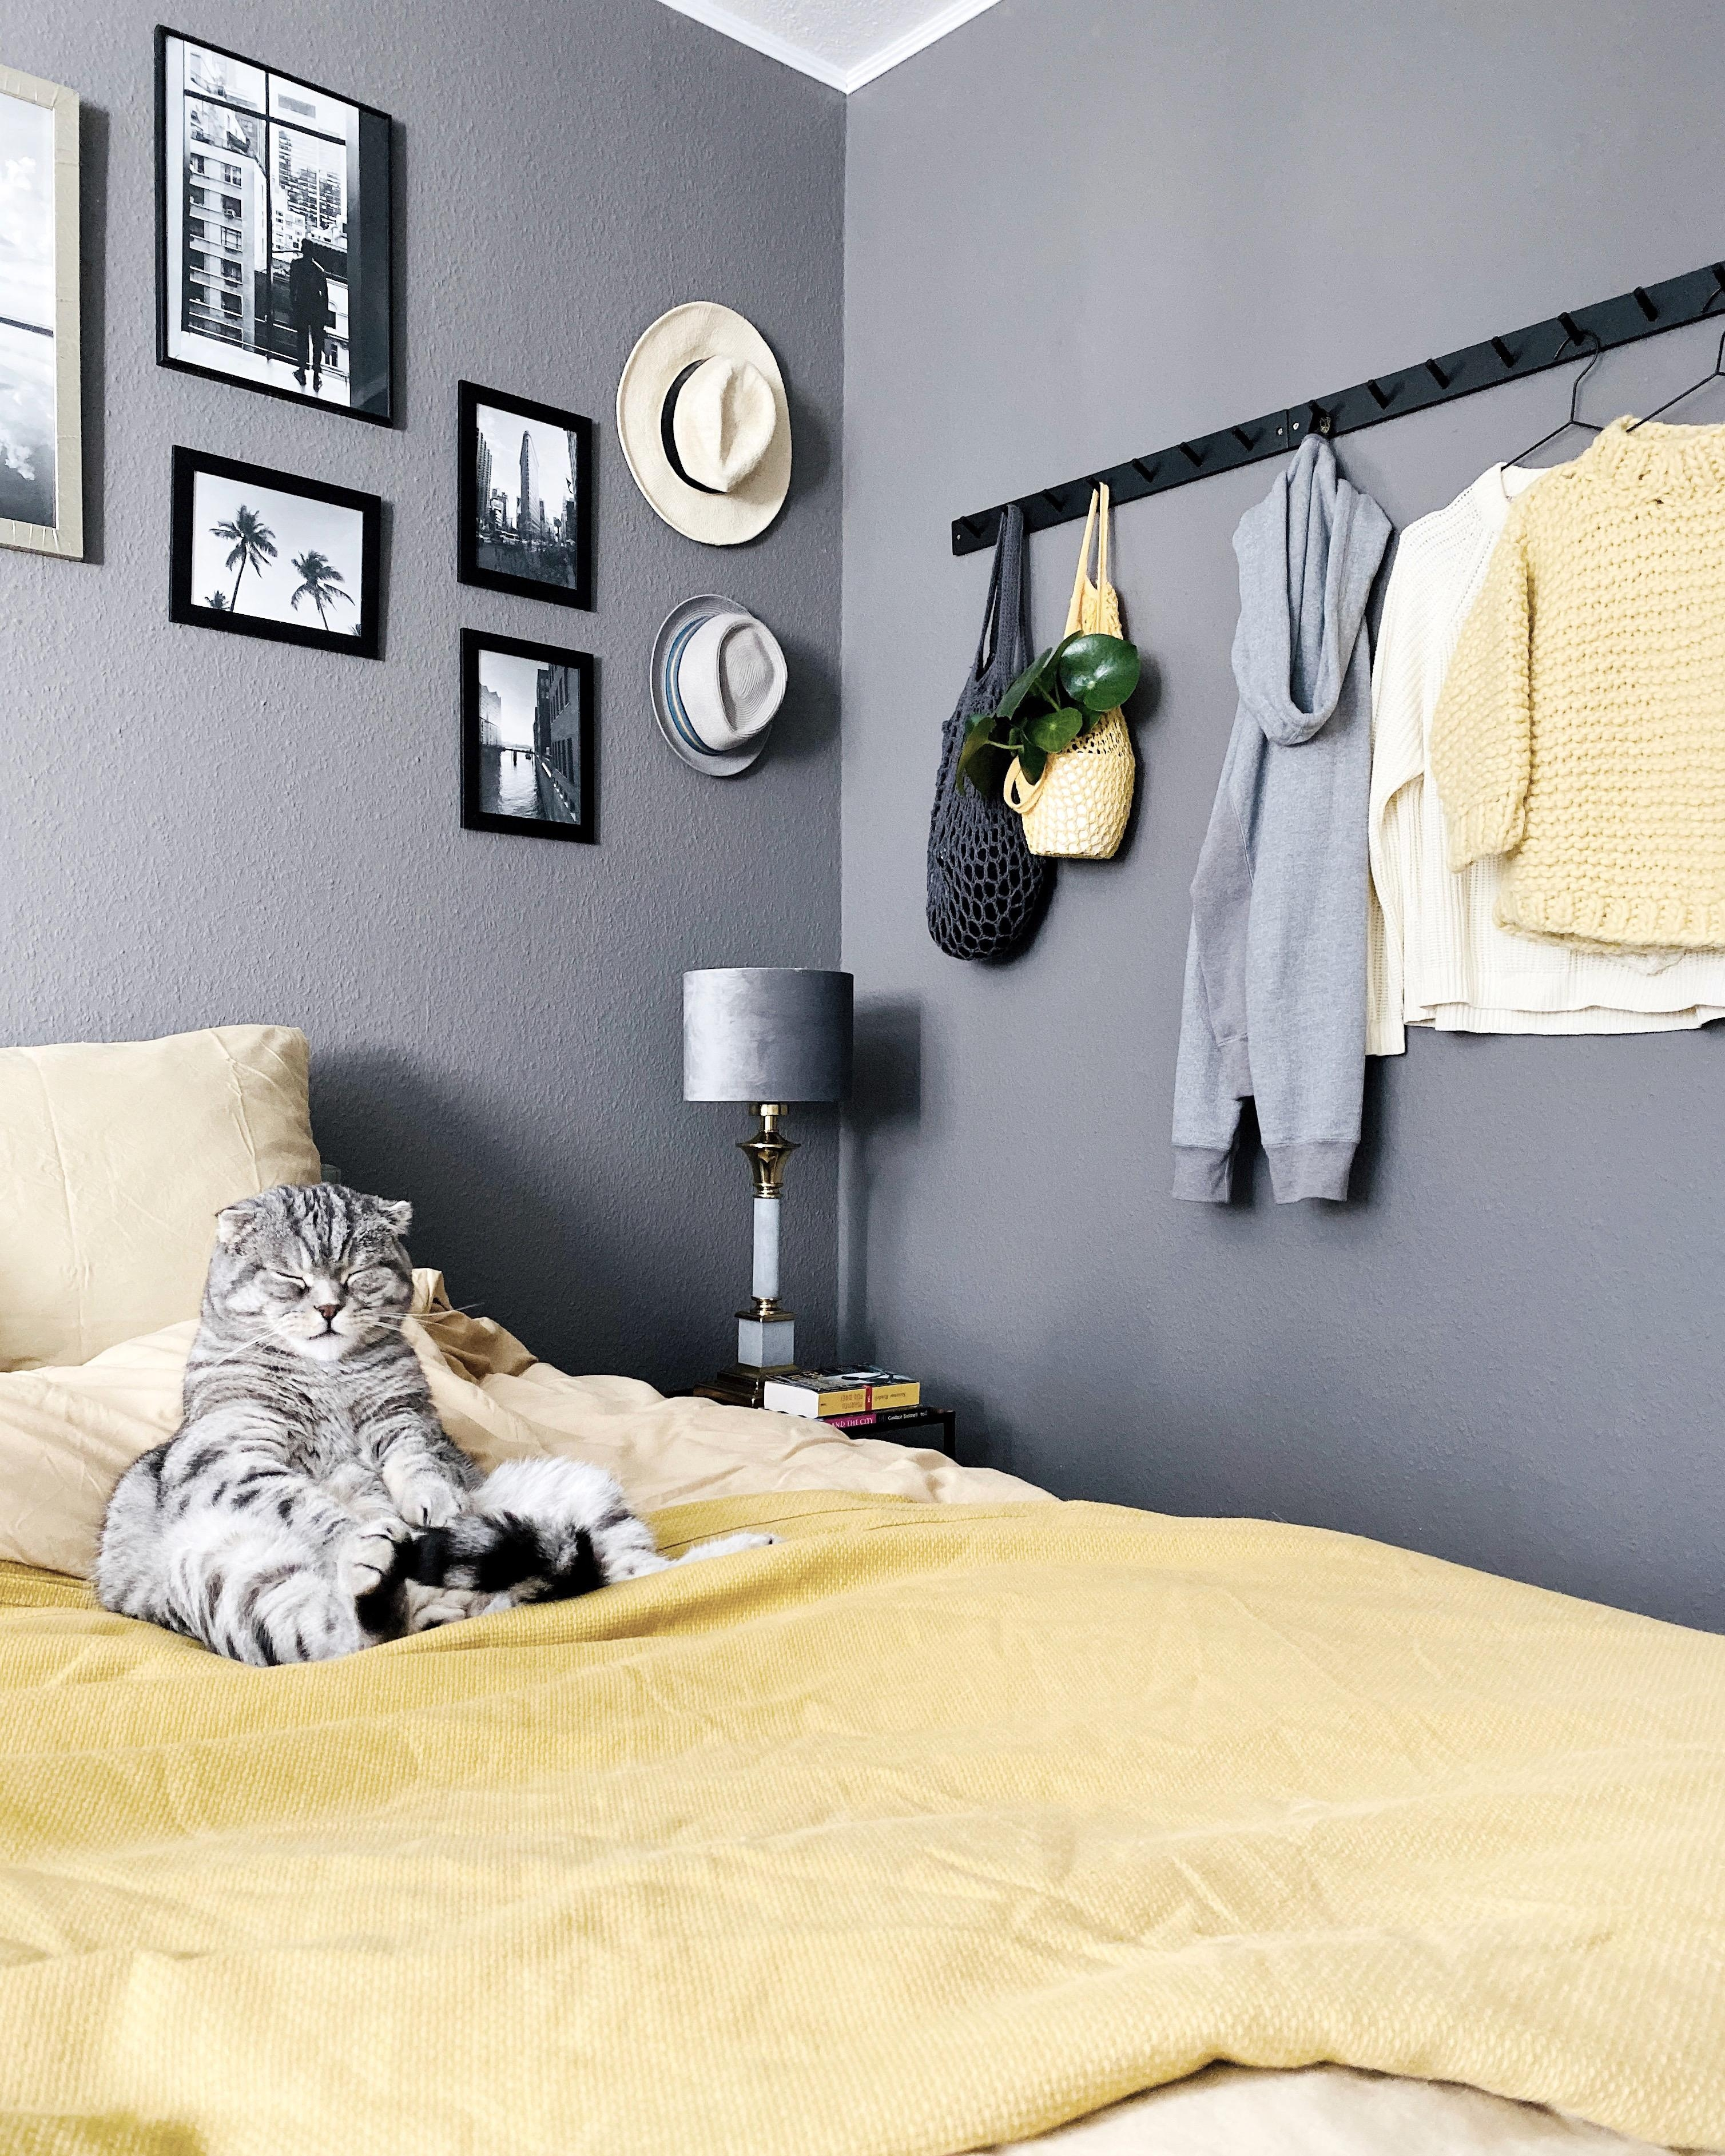 Face zu montag  yellowisthenewblack yellowaddicted interior bedroom bedroomgoals hygge monochrome interior  7161dccb d089 40e8 b005 03bc222adafc